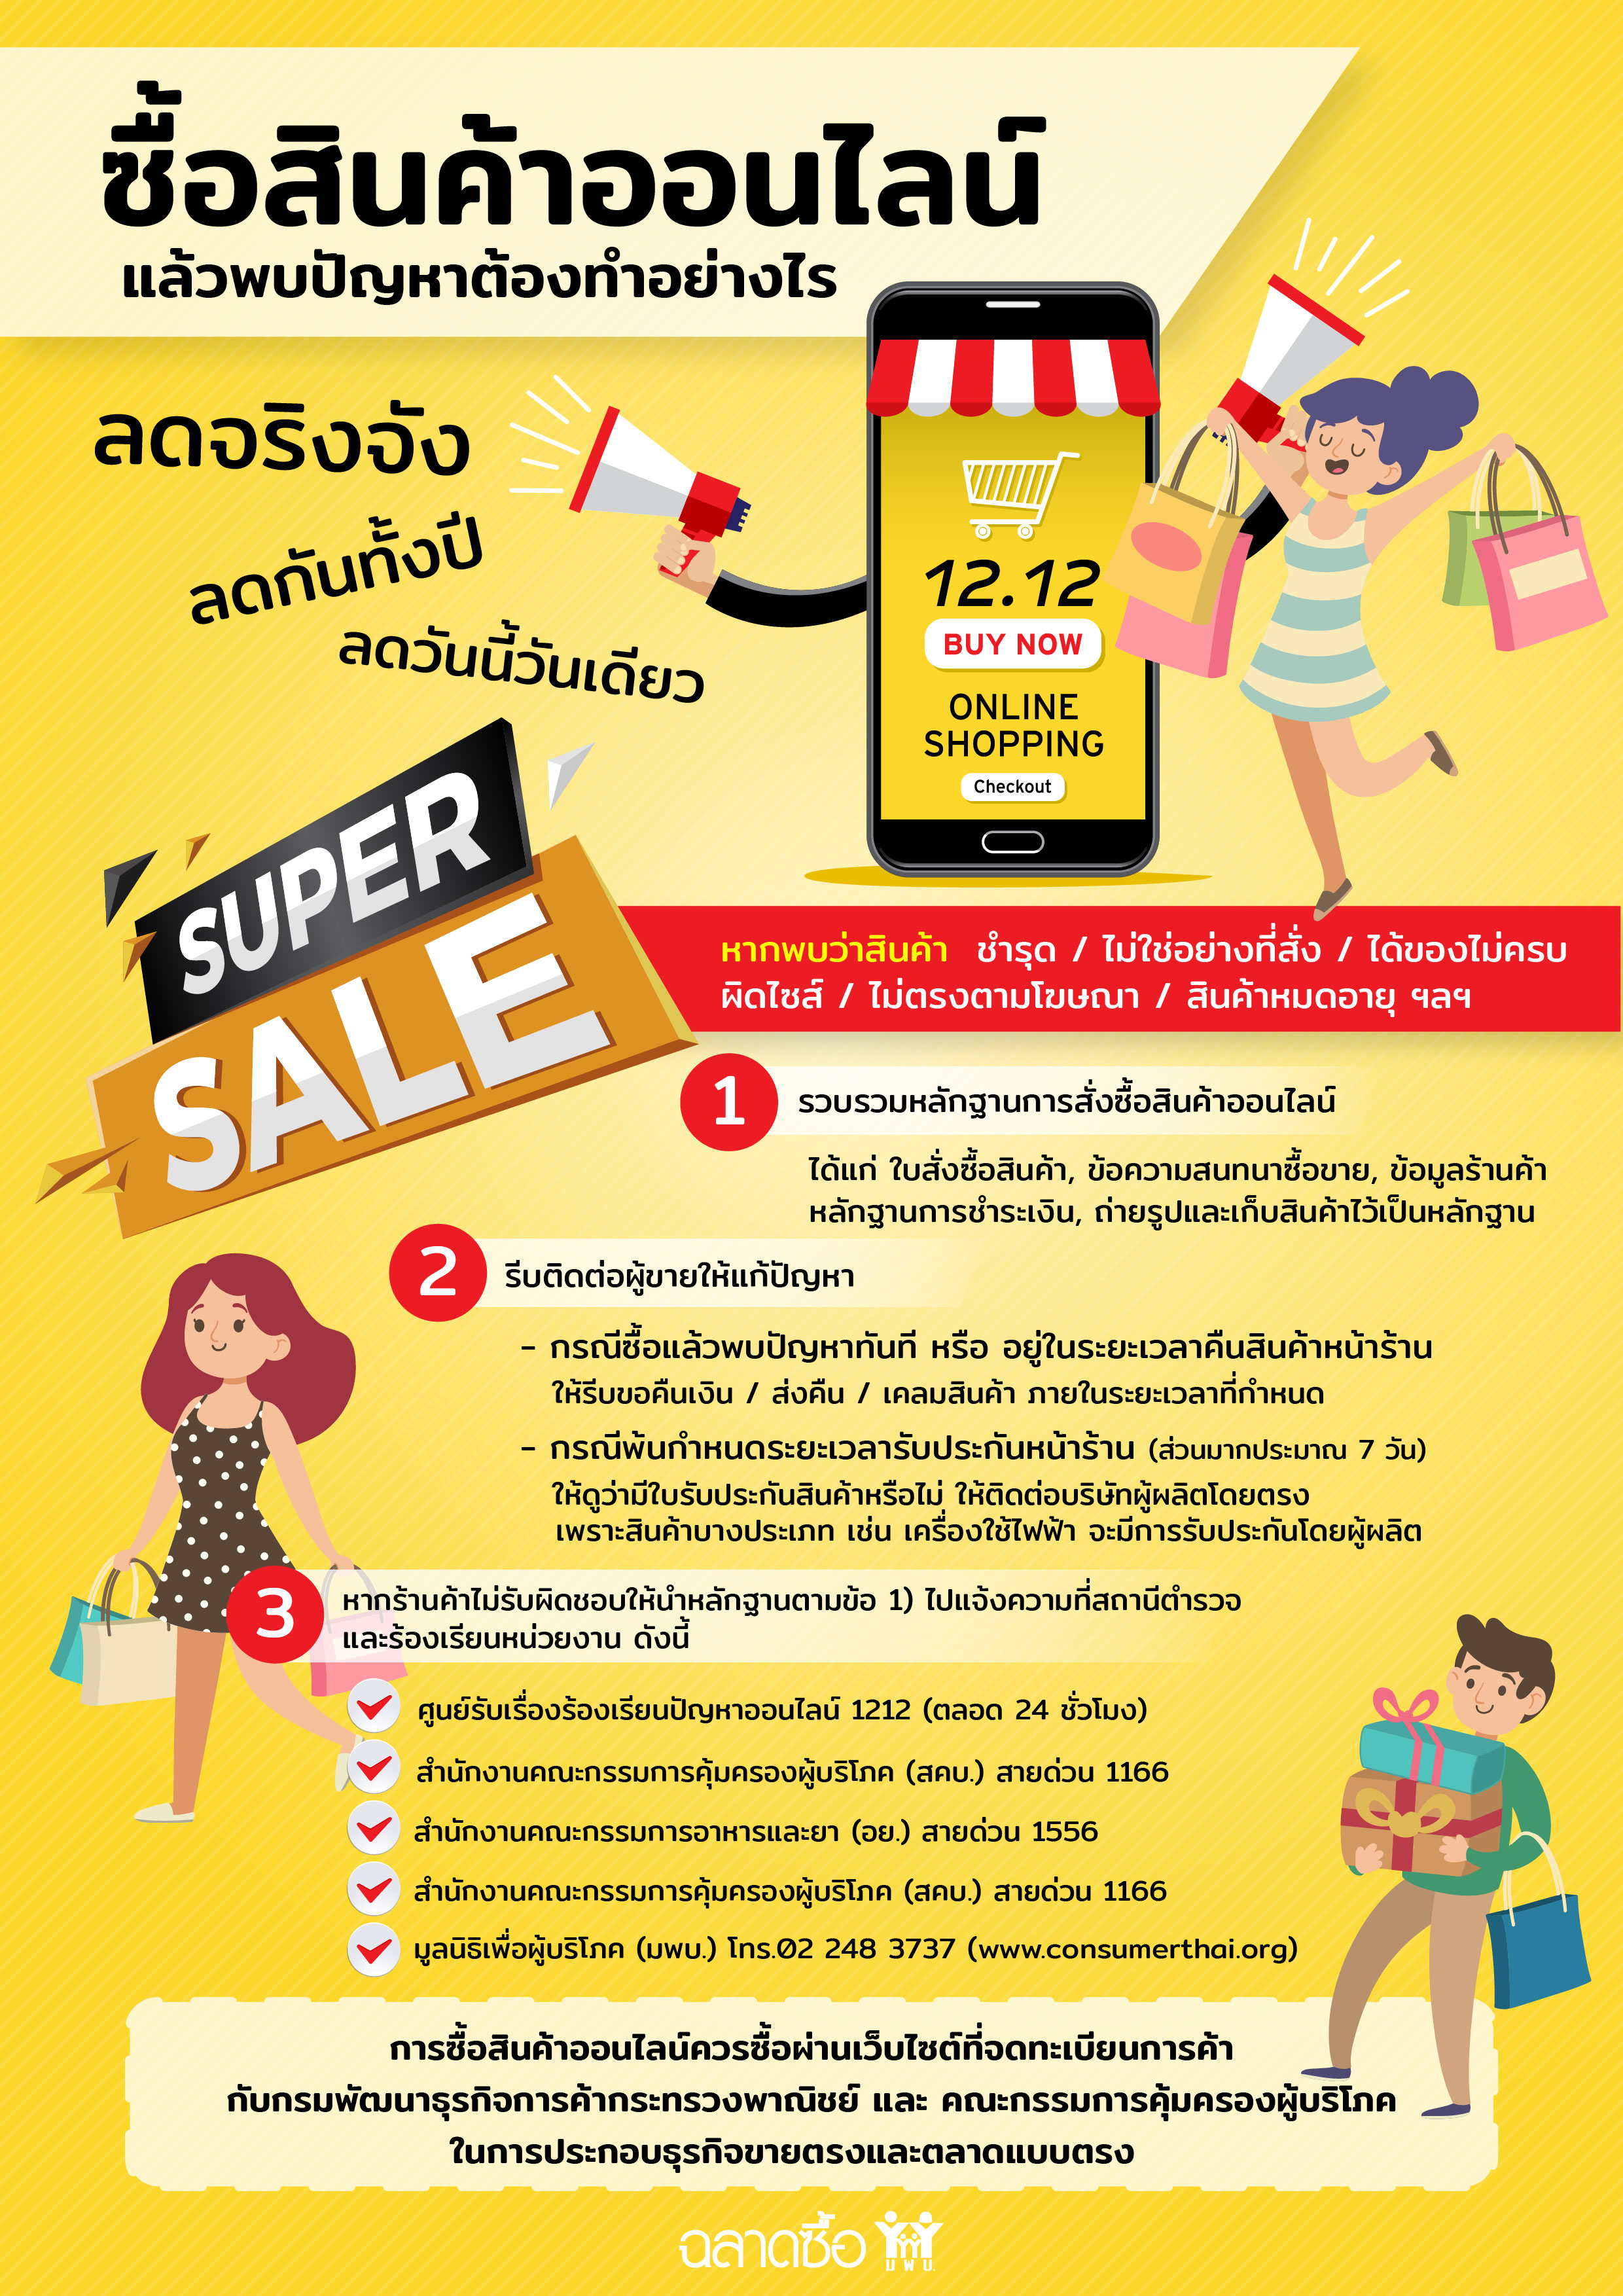 12.12 online shopping complaint for web 01